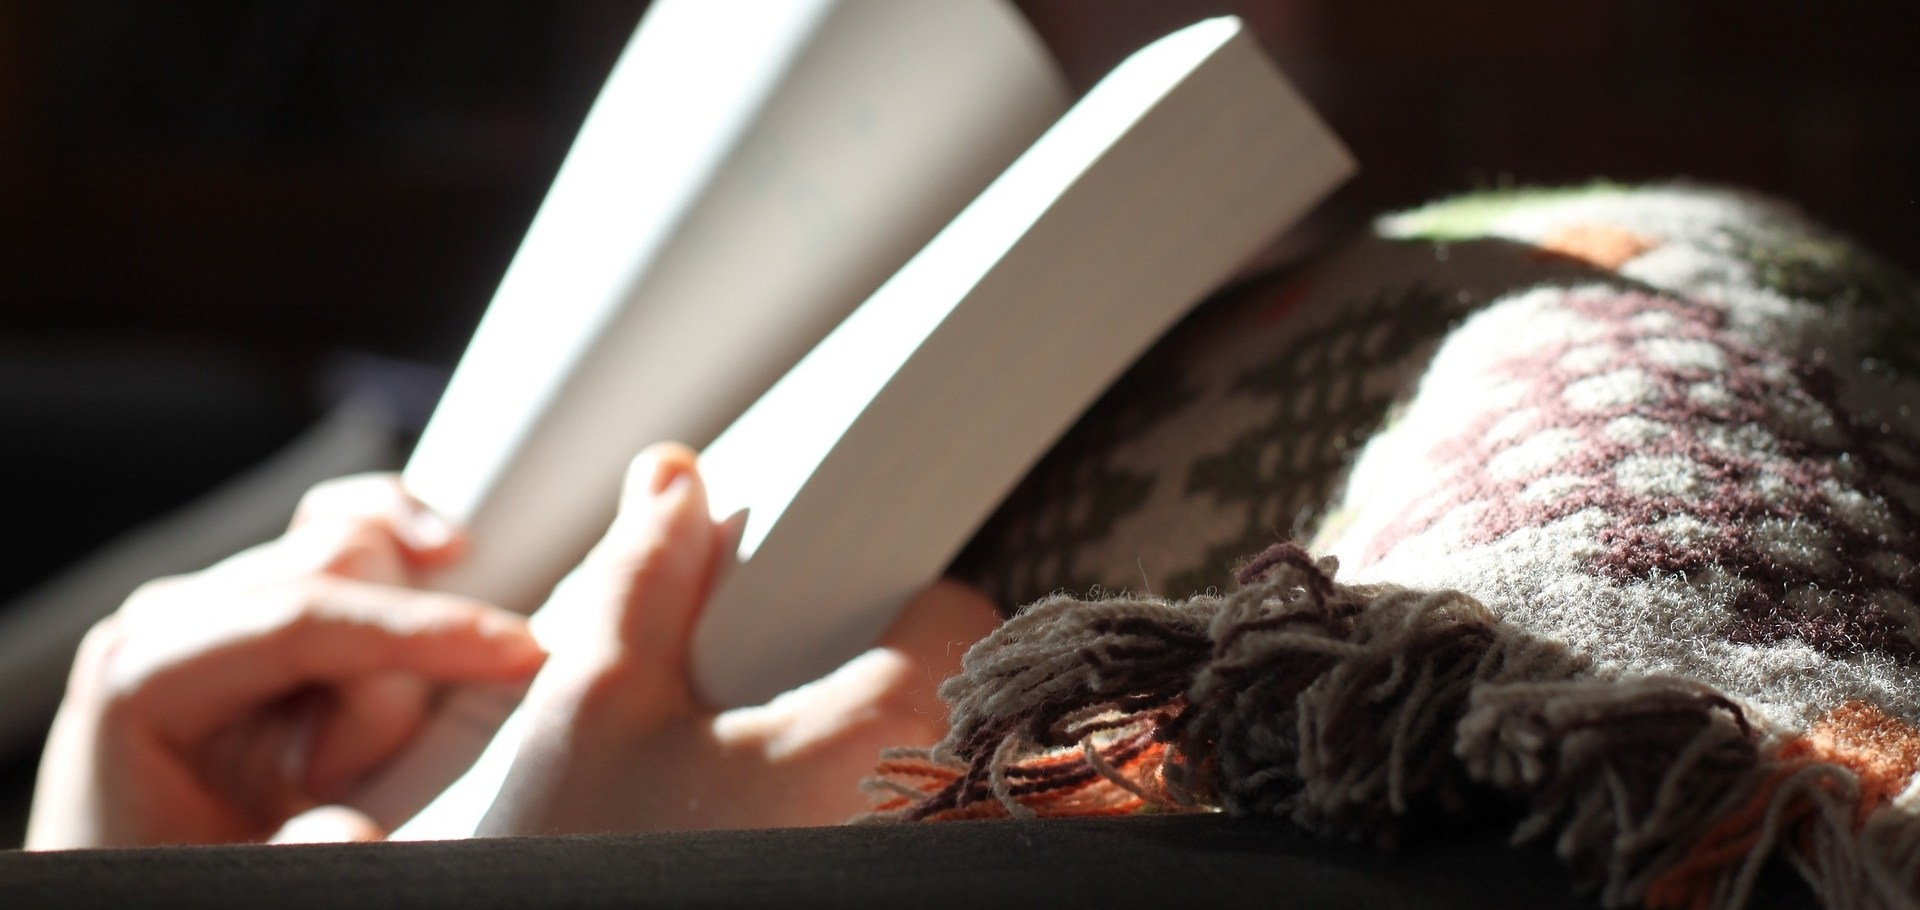 Image of hands holding an open book